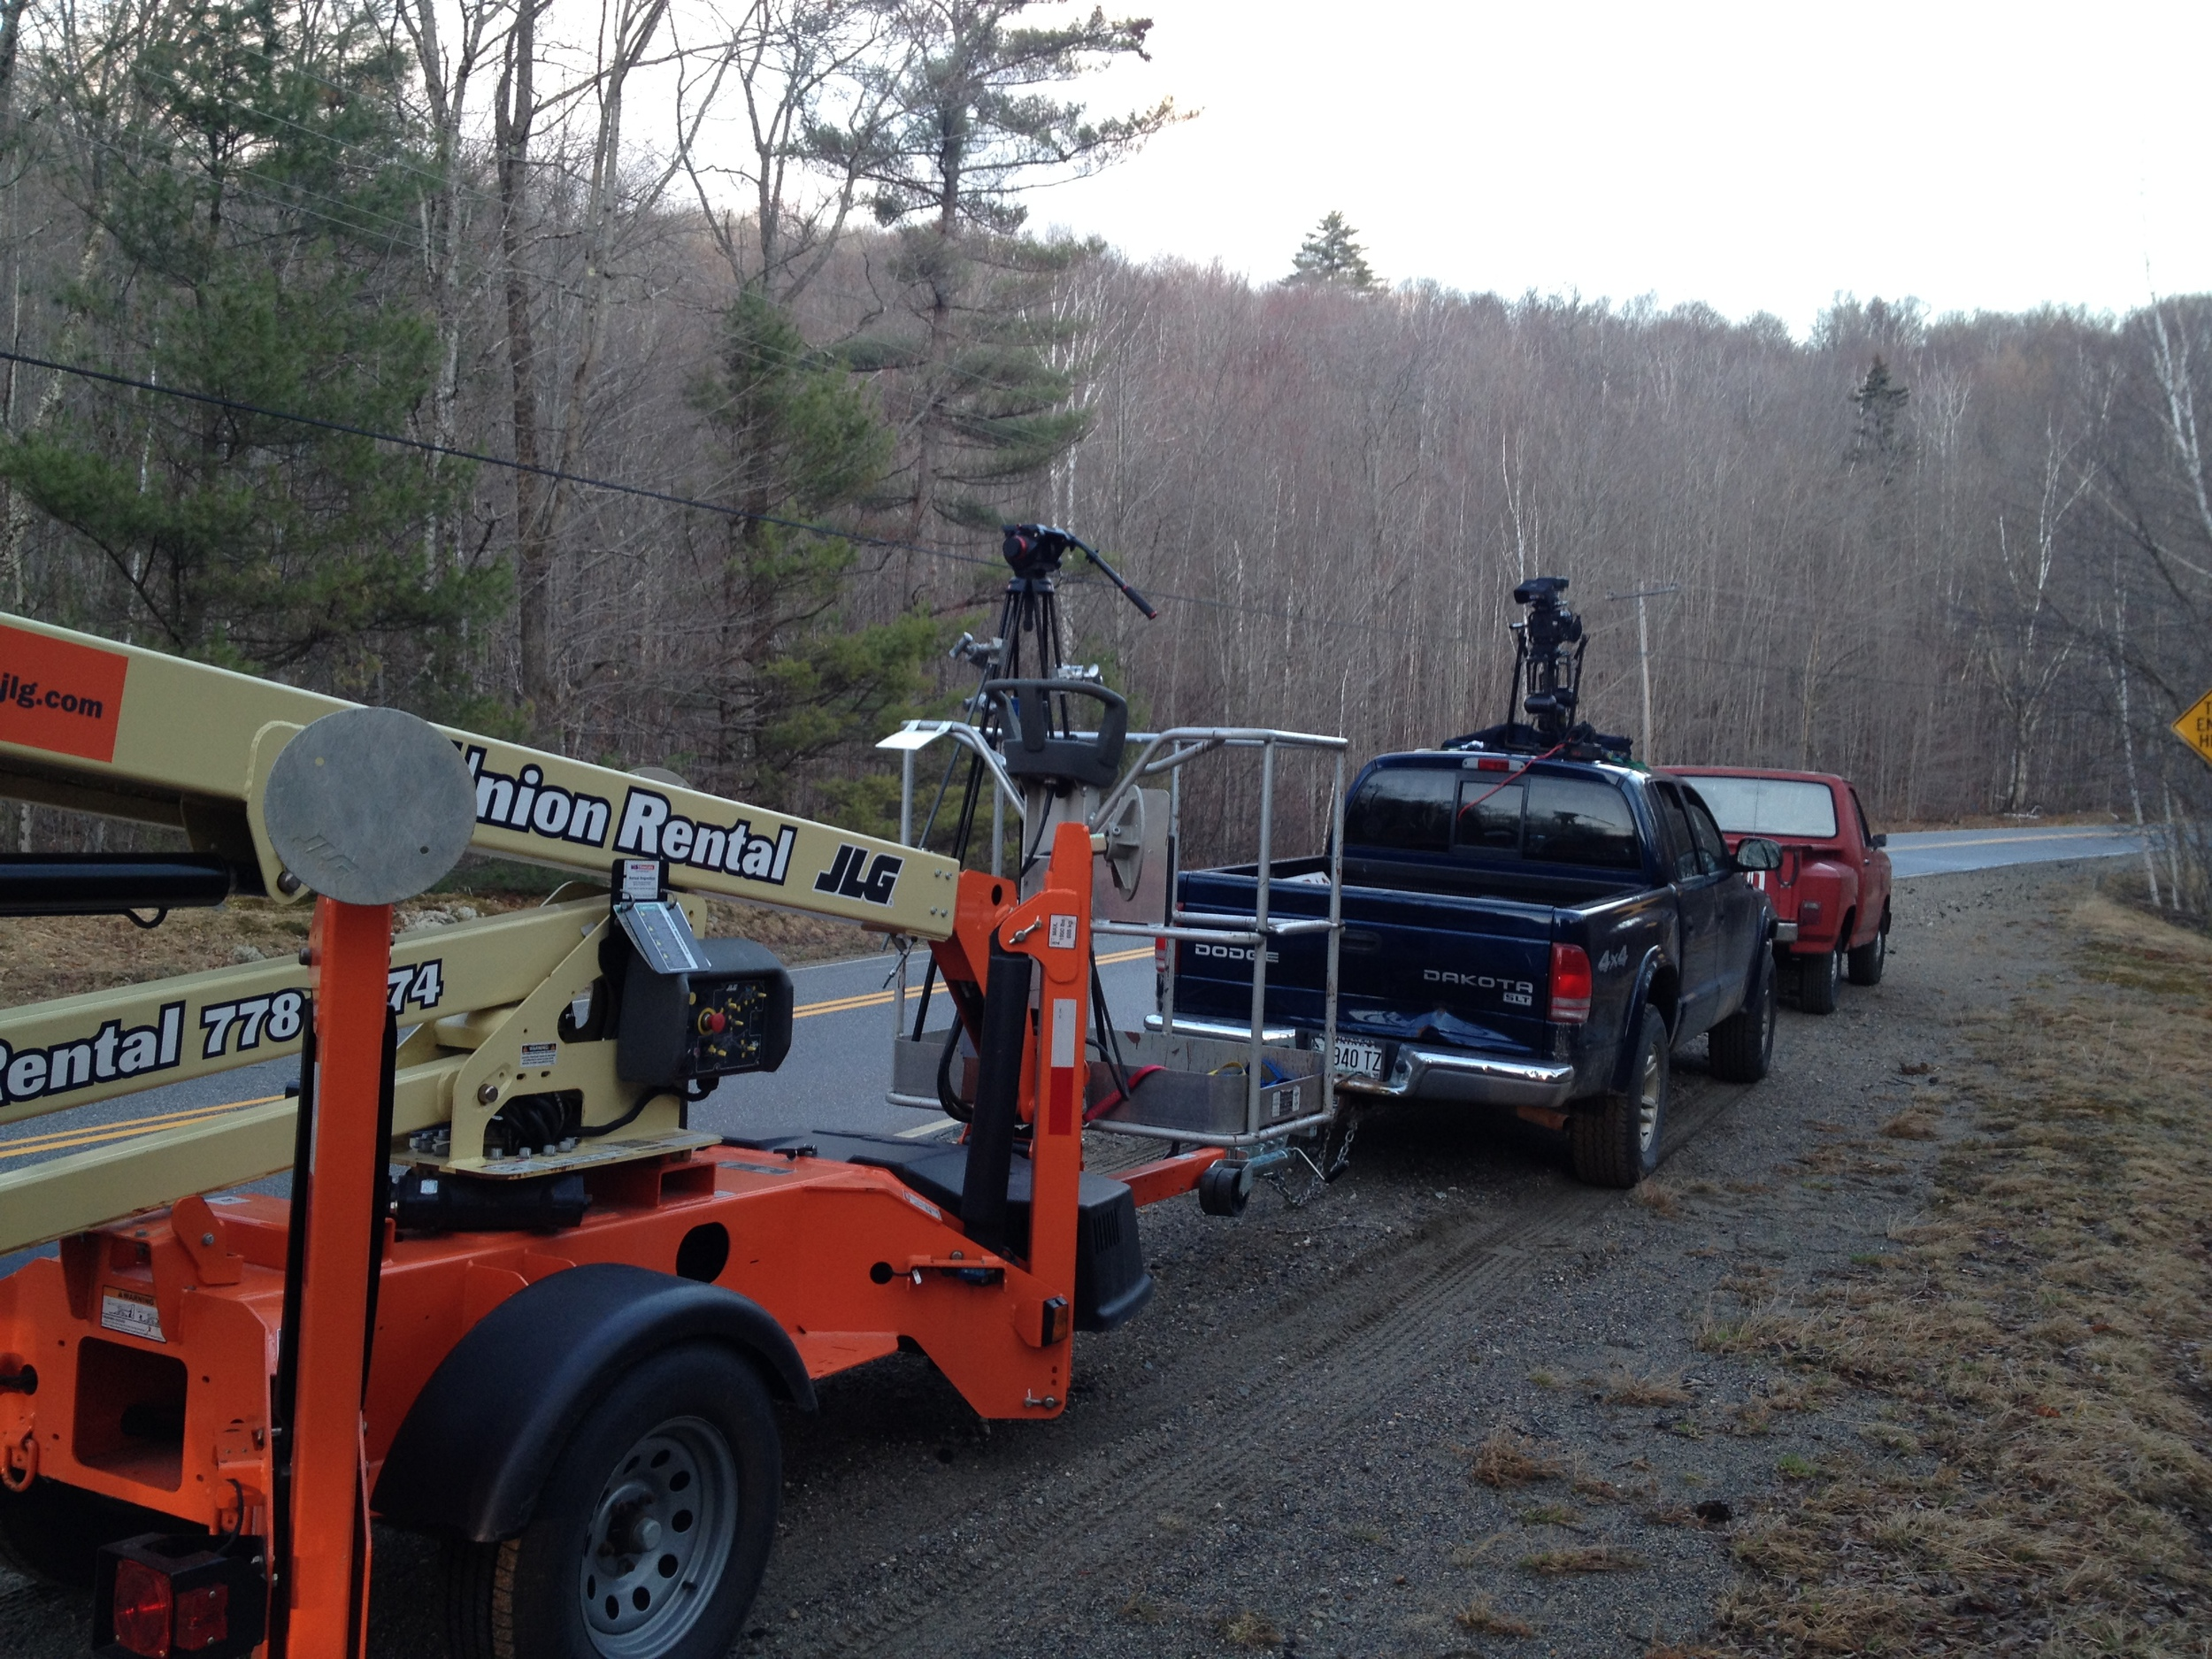 the whole rig, including the bucket lift we used earlier in the day.  It's good to have a truck for shoots like these.